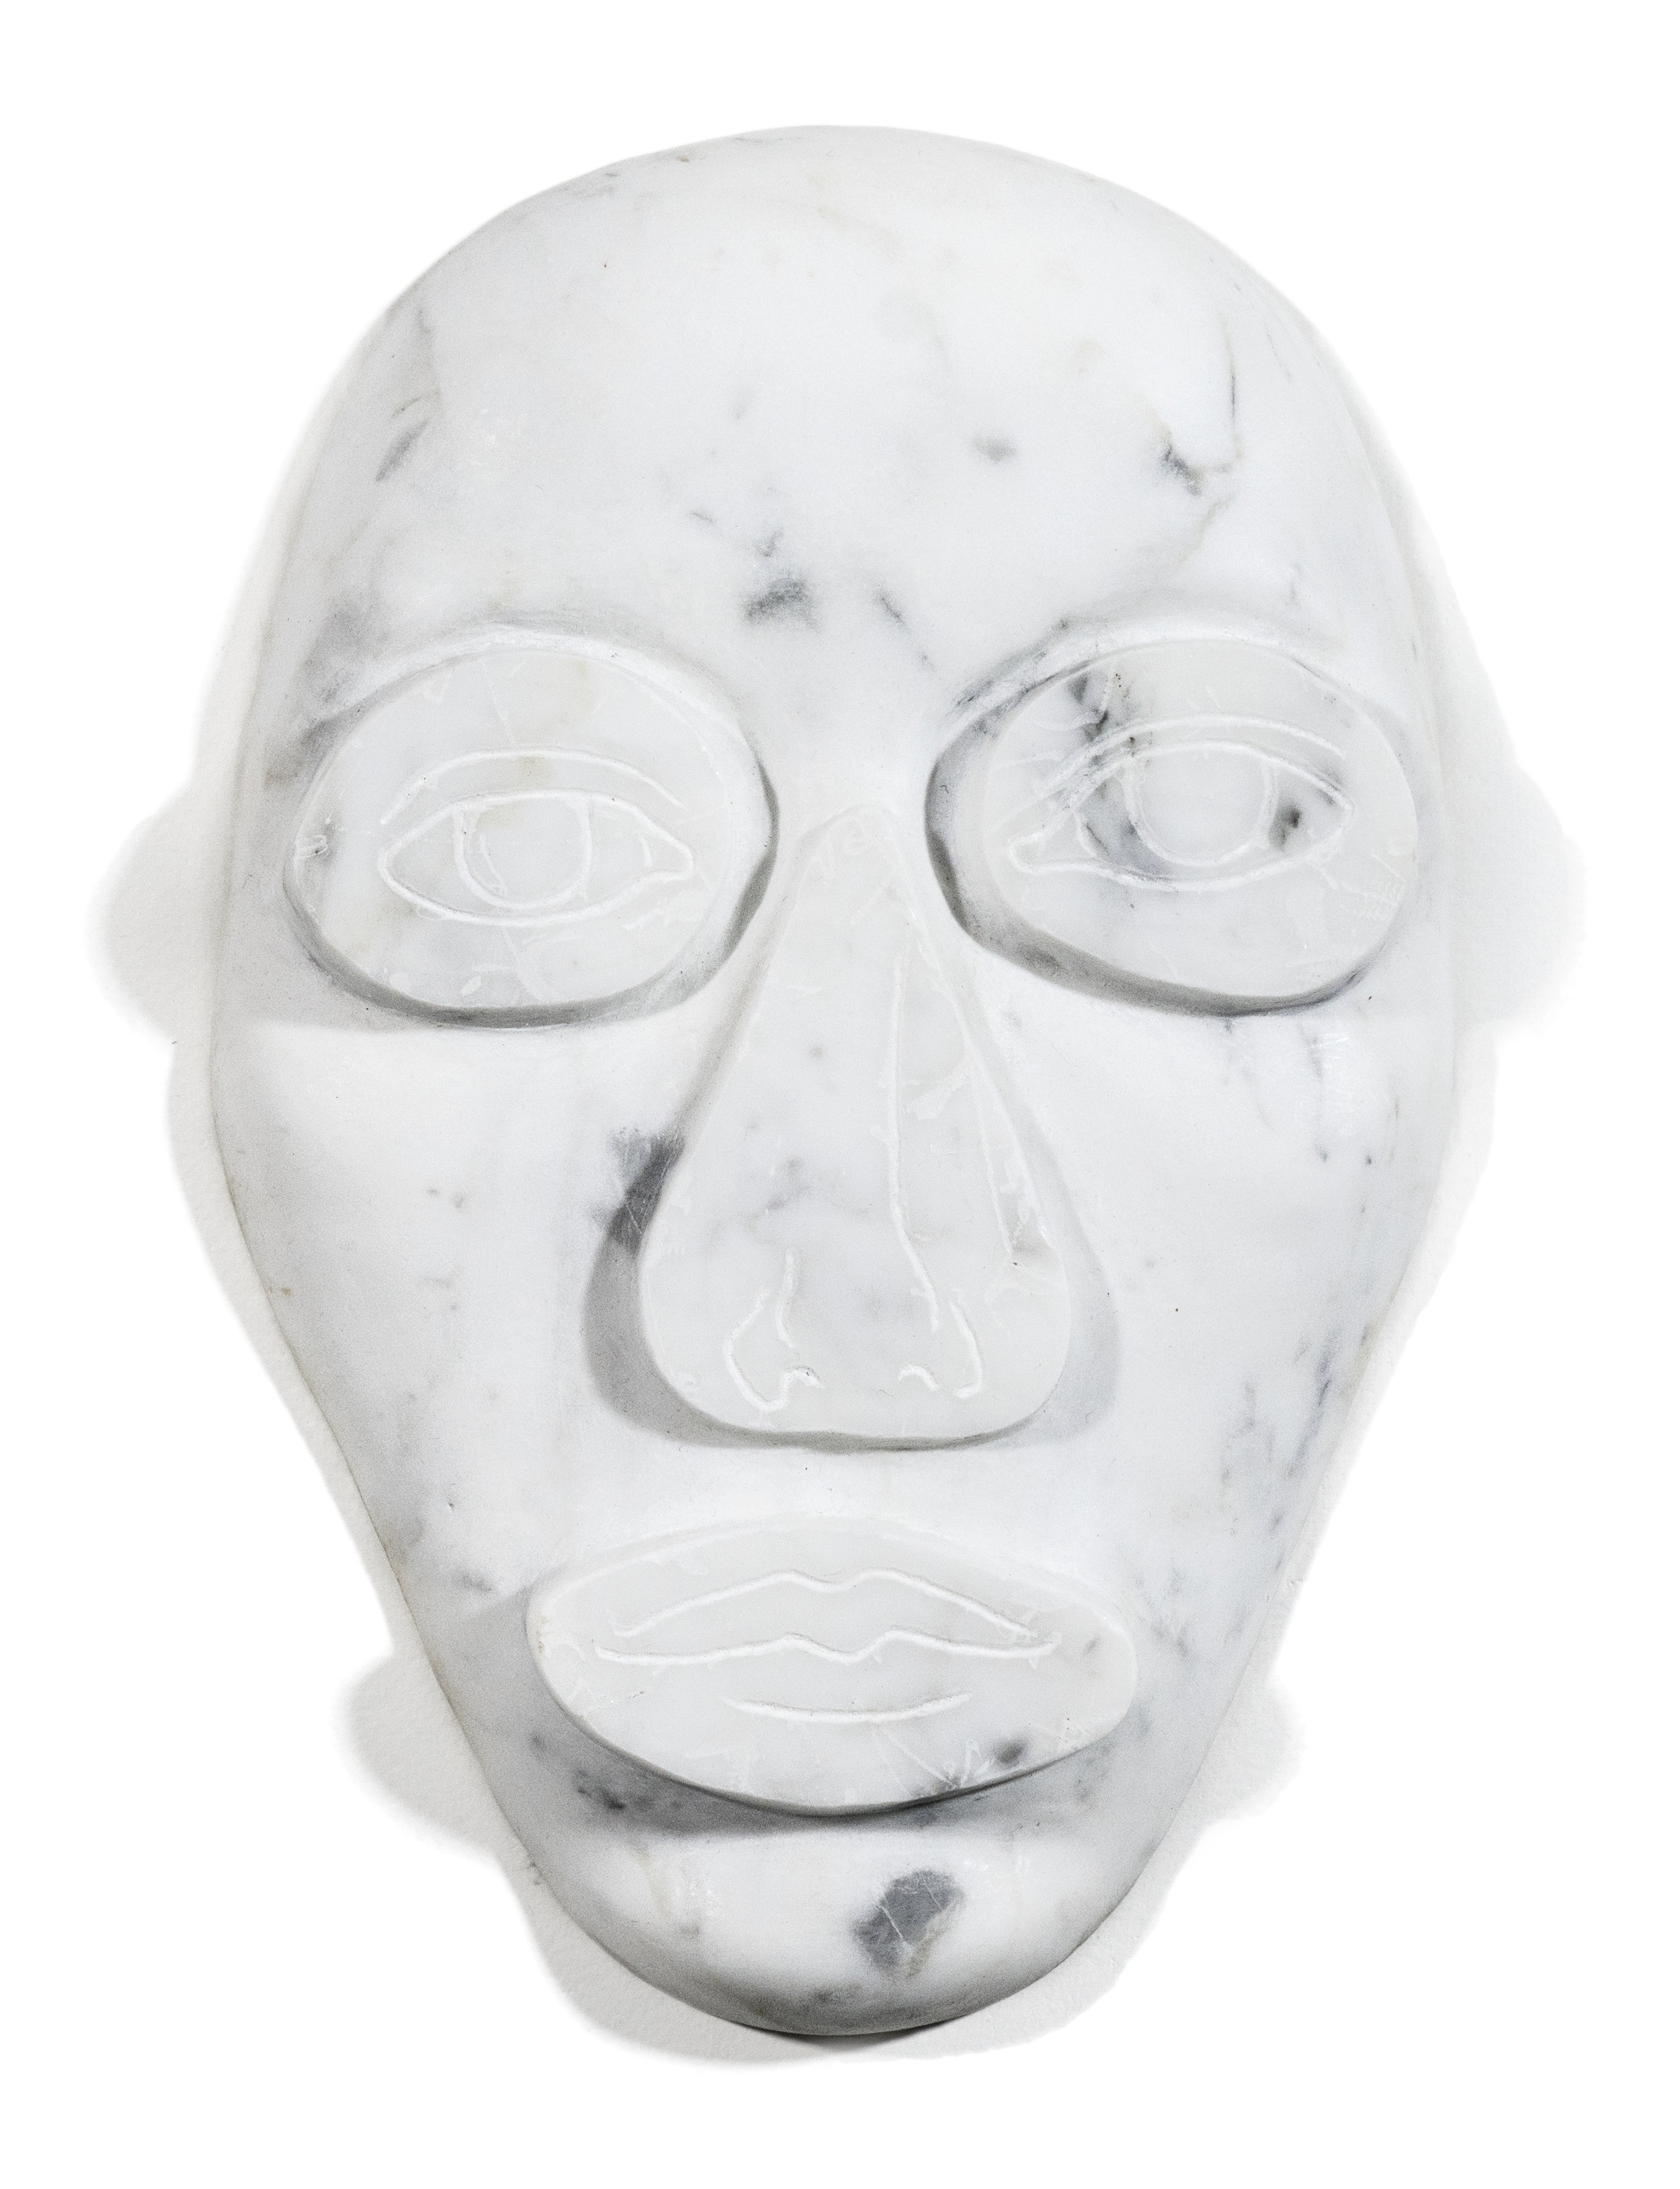 Face Up 1, 2017 Marble, 11 1/2 x 7 1/4 x 1 1/2 inches